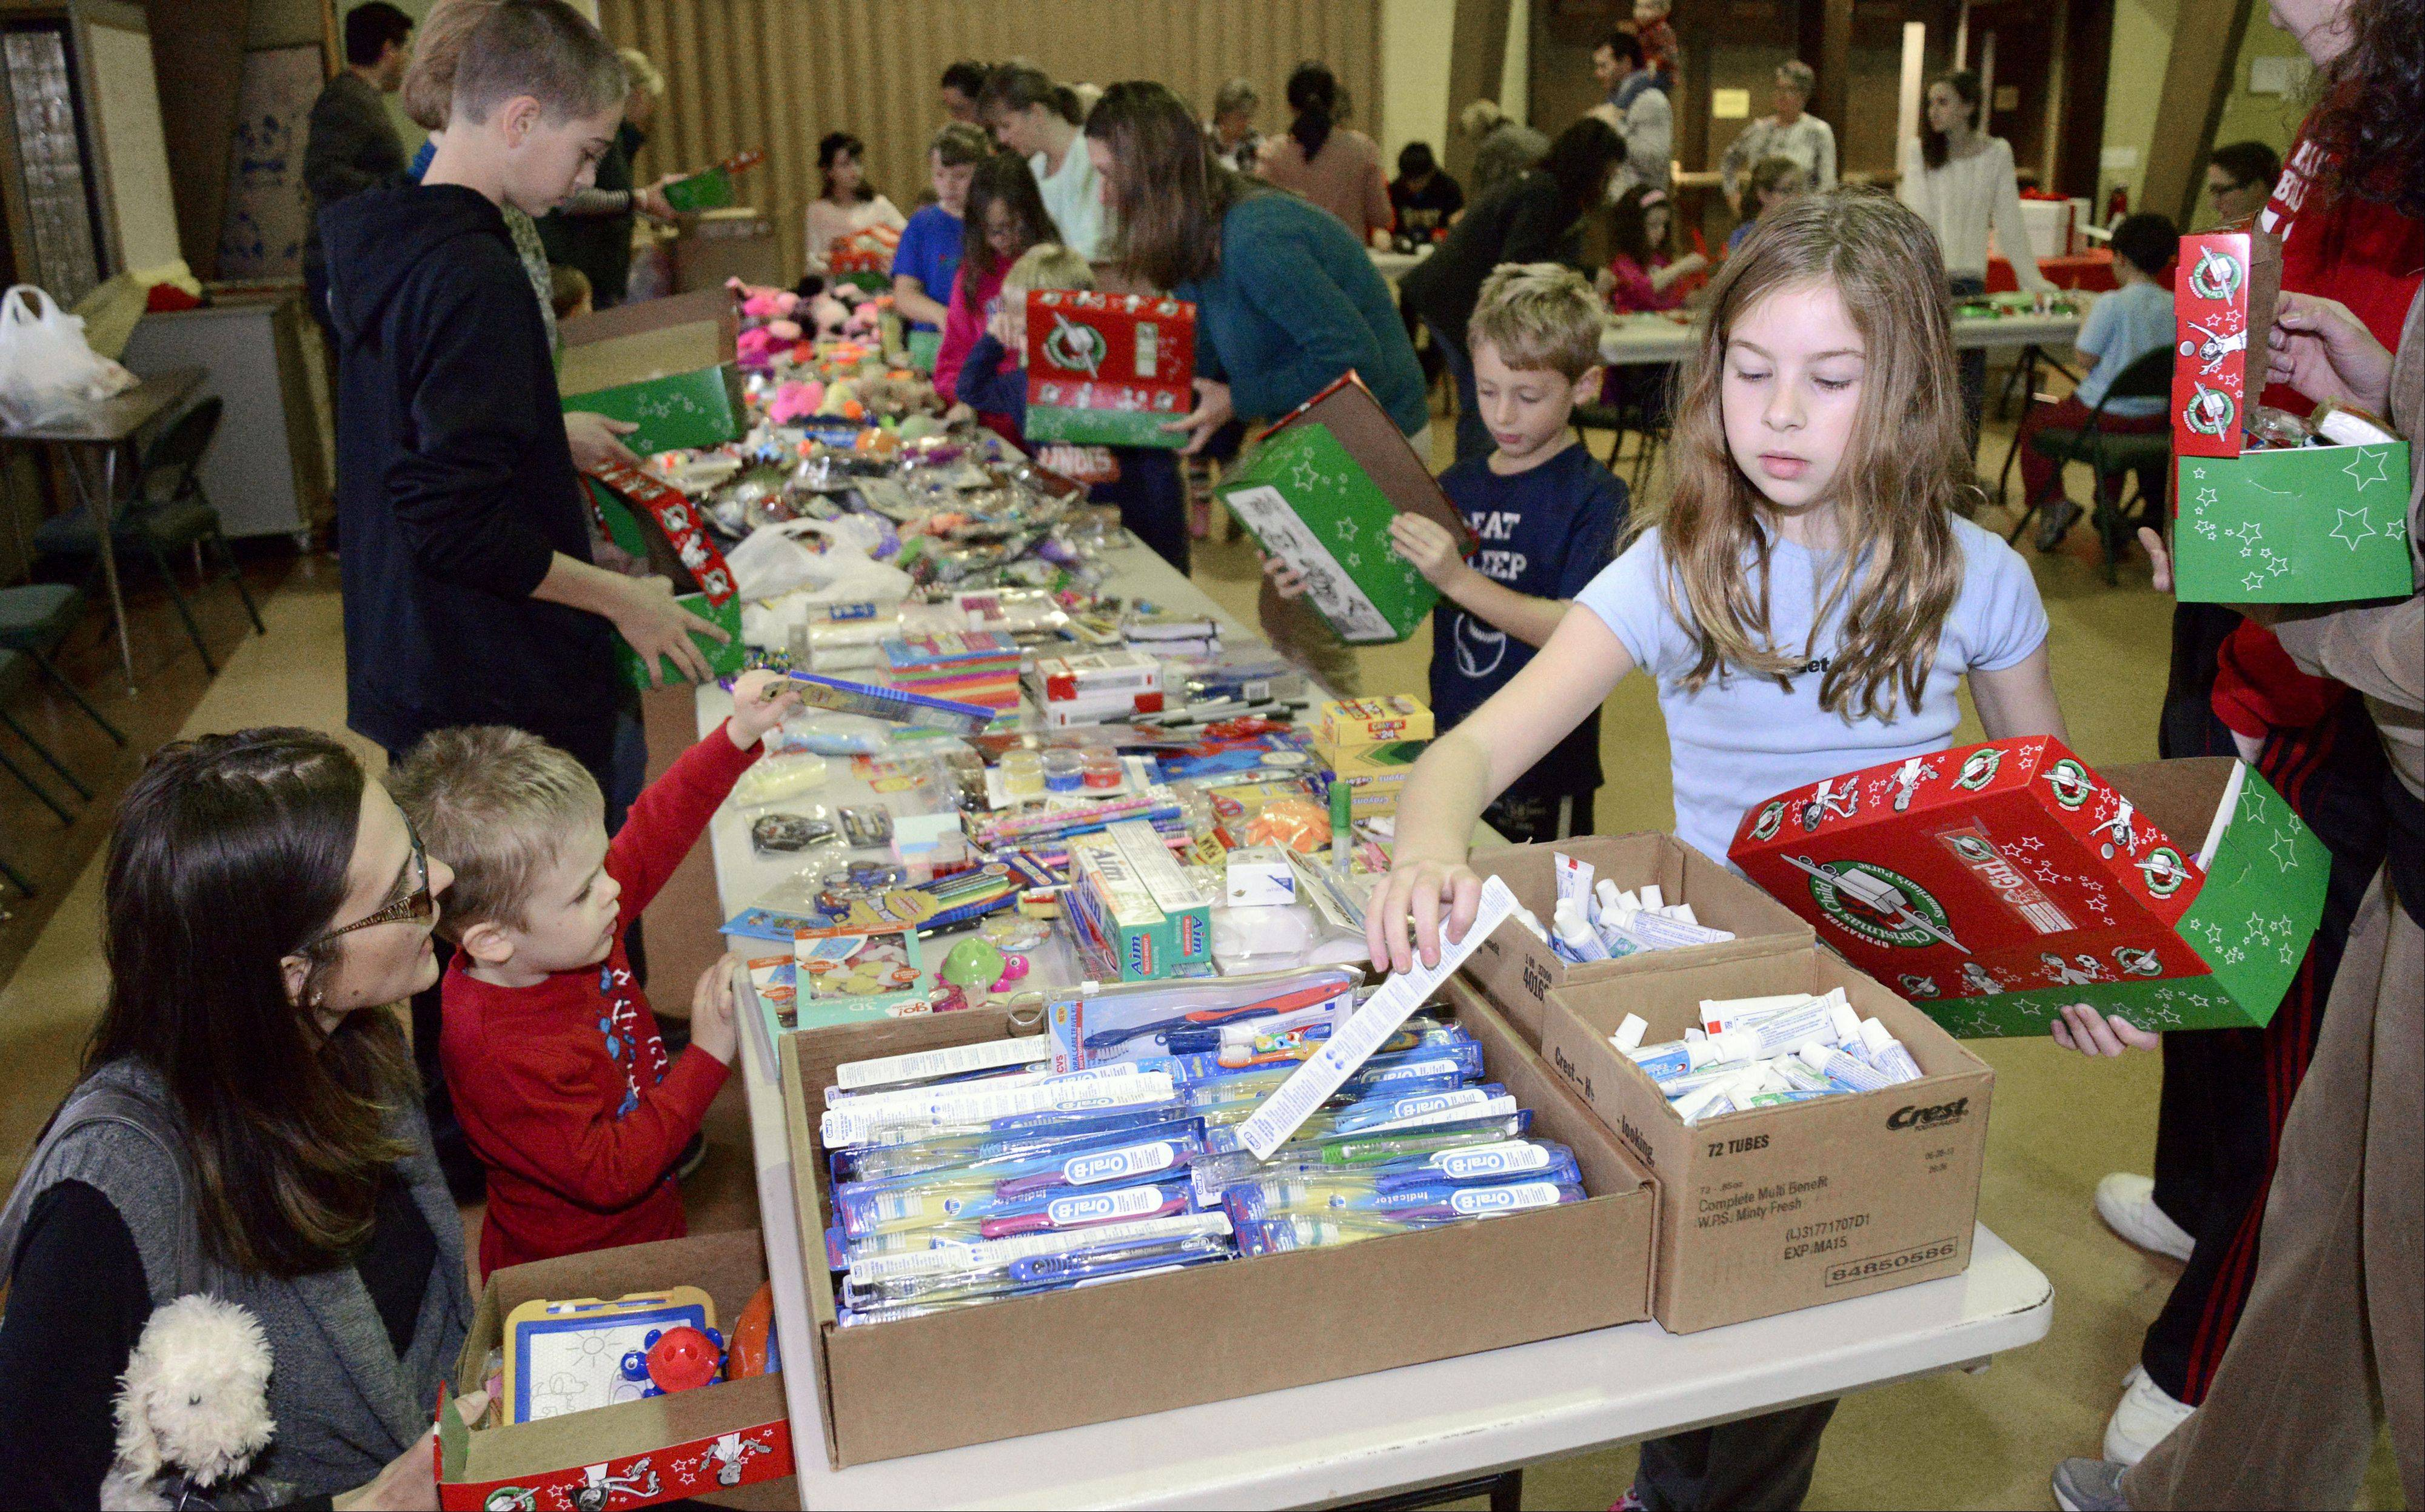 Jen Katsenios and her 3-year-old son, TJ, of Elgin, left, and Kelsie Hoffmann, 9, of Batavia fill shoe boxes full of goodies at the Operation Christmas Child packing party at St. Mark's Preschool in St. Charles on Saturday. TJ attends the preschool. It was his first time at the event.